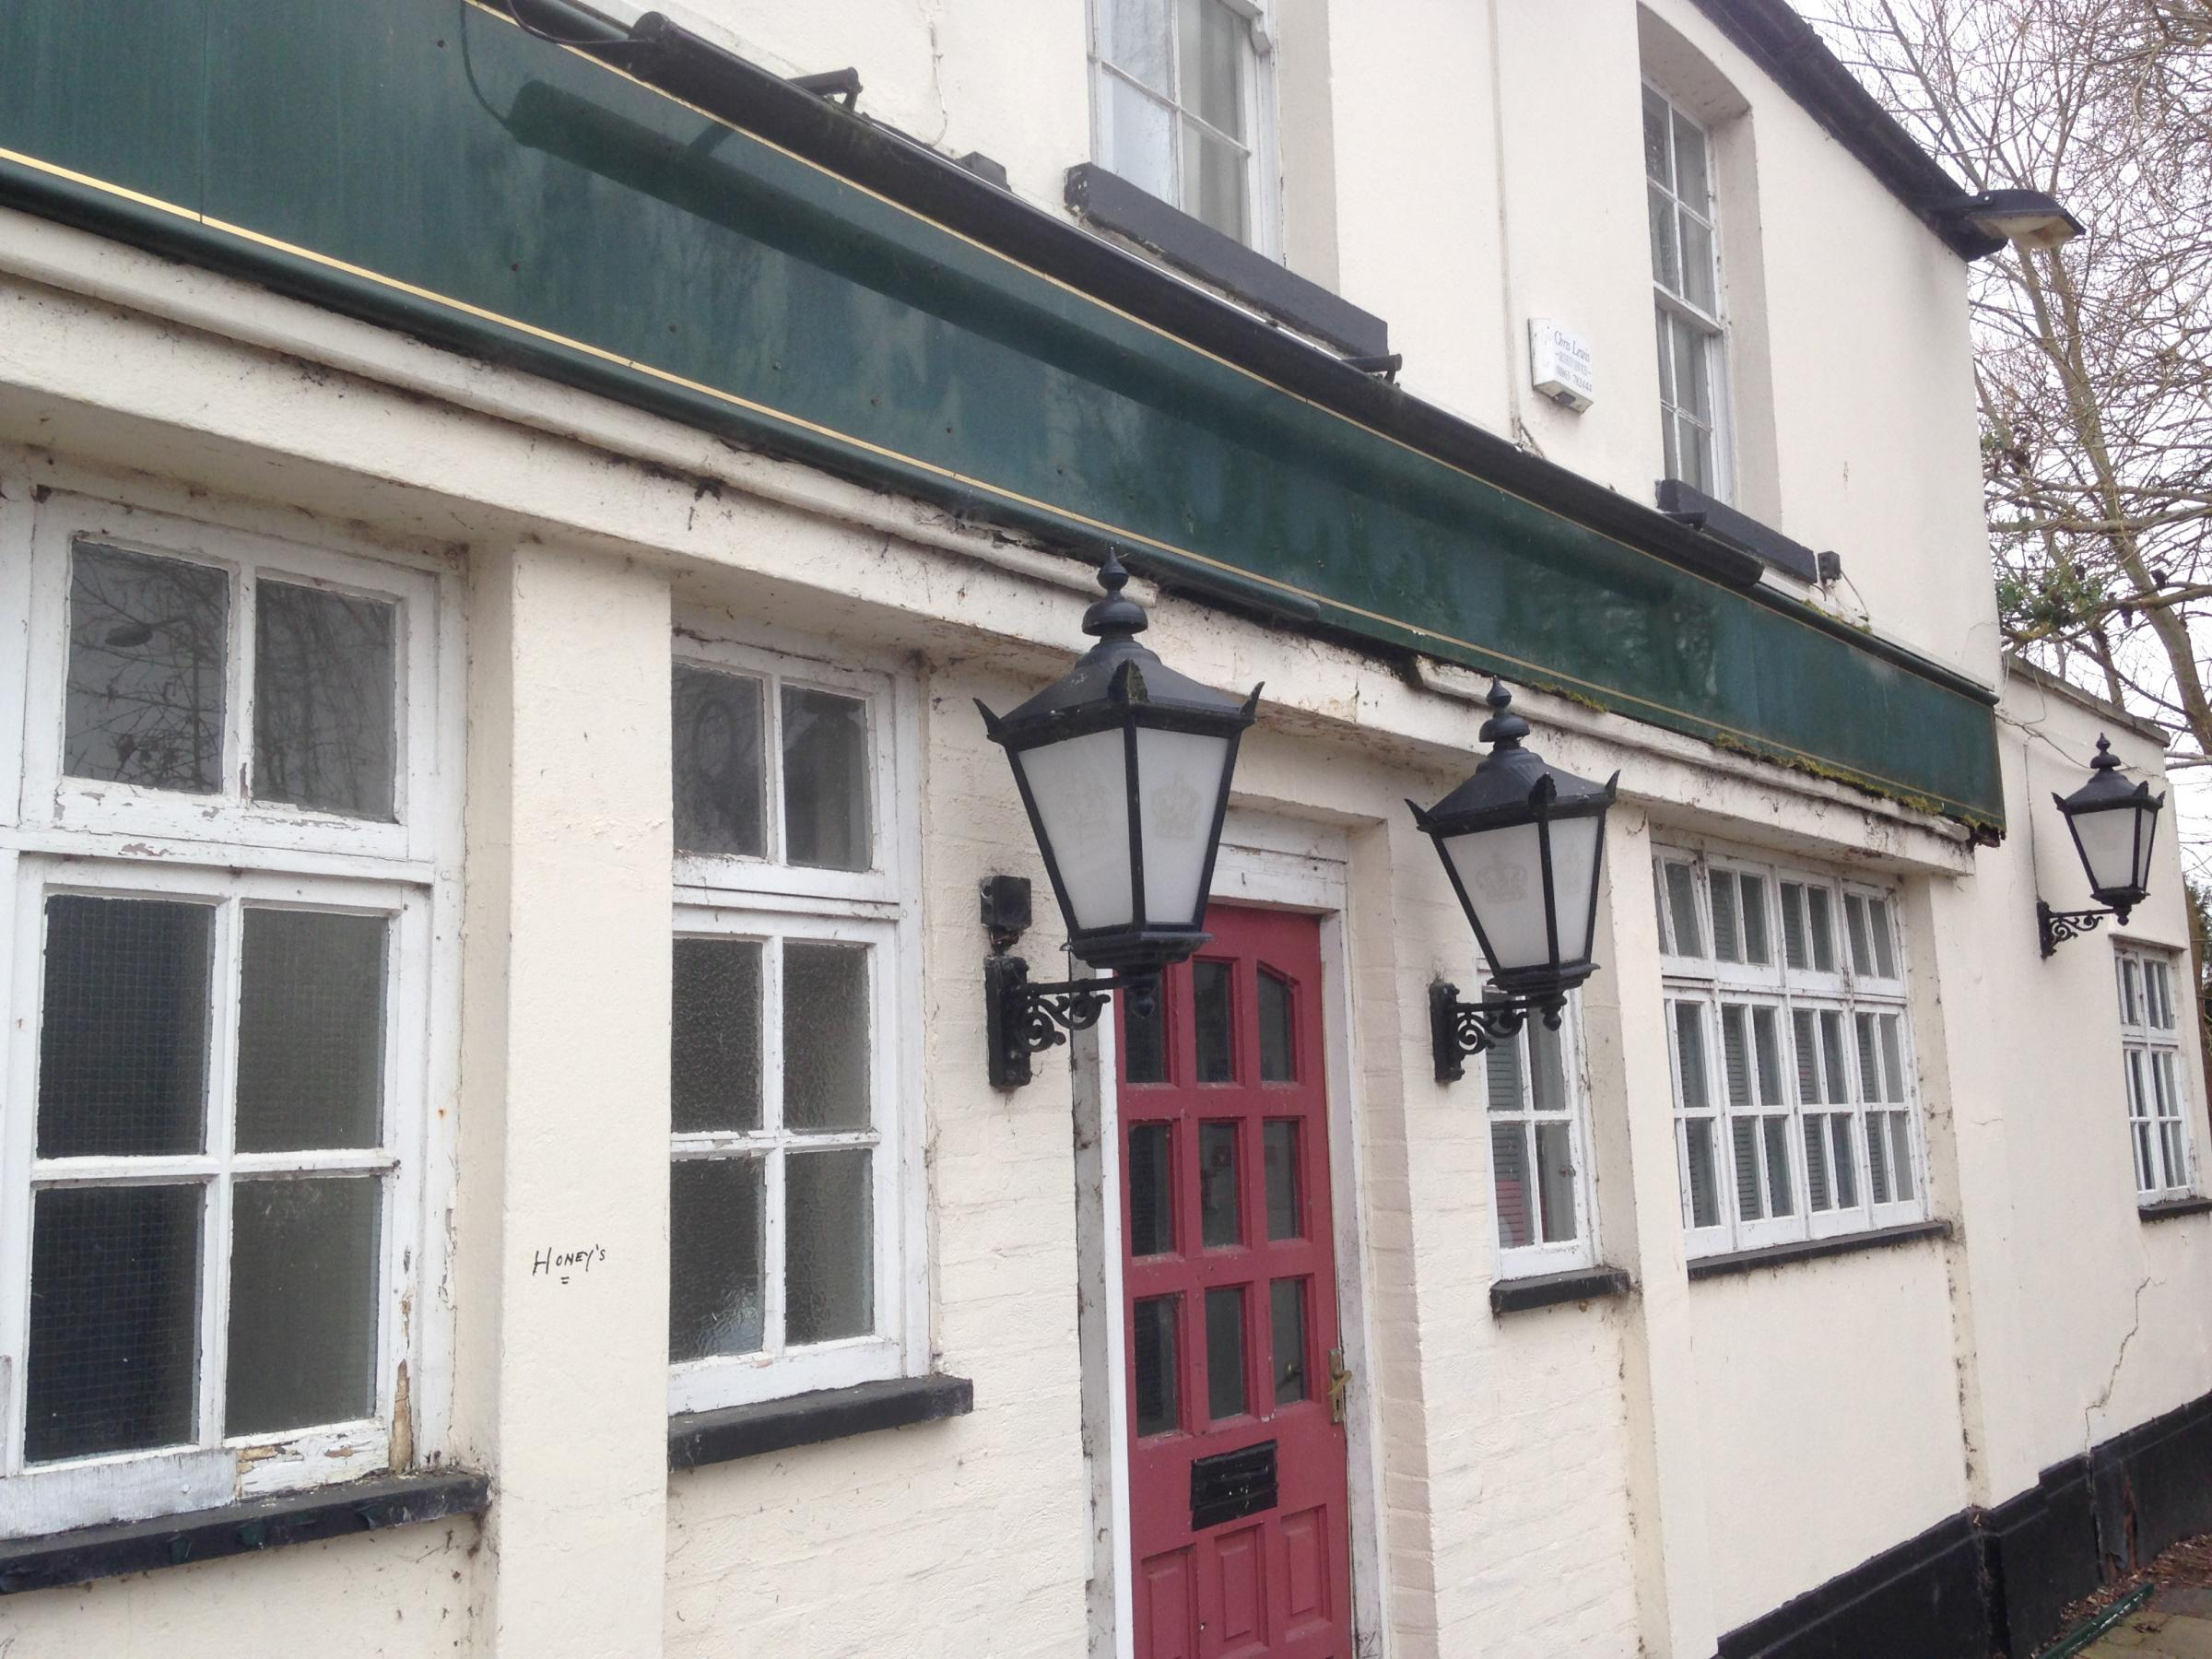 When will Holly Bush pub in Oxford reopen?